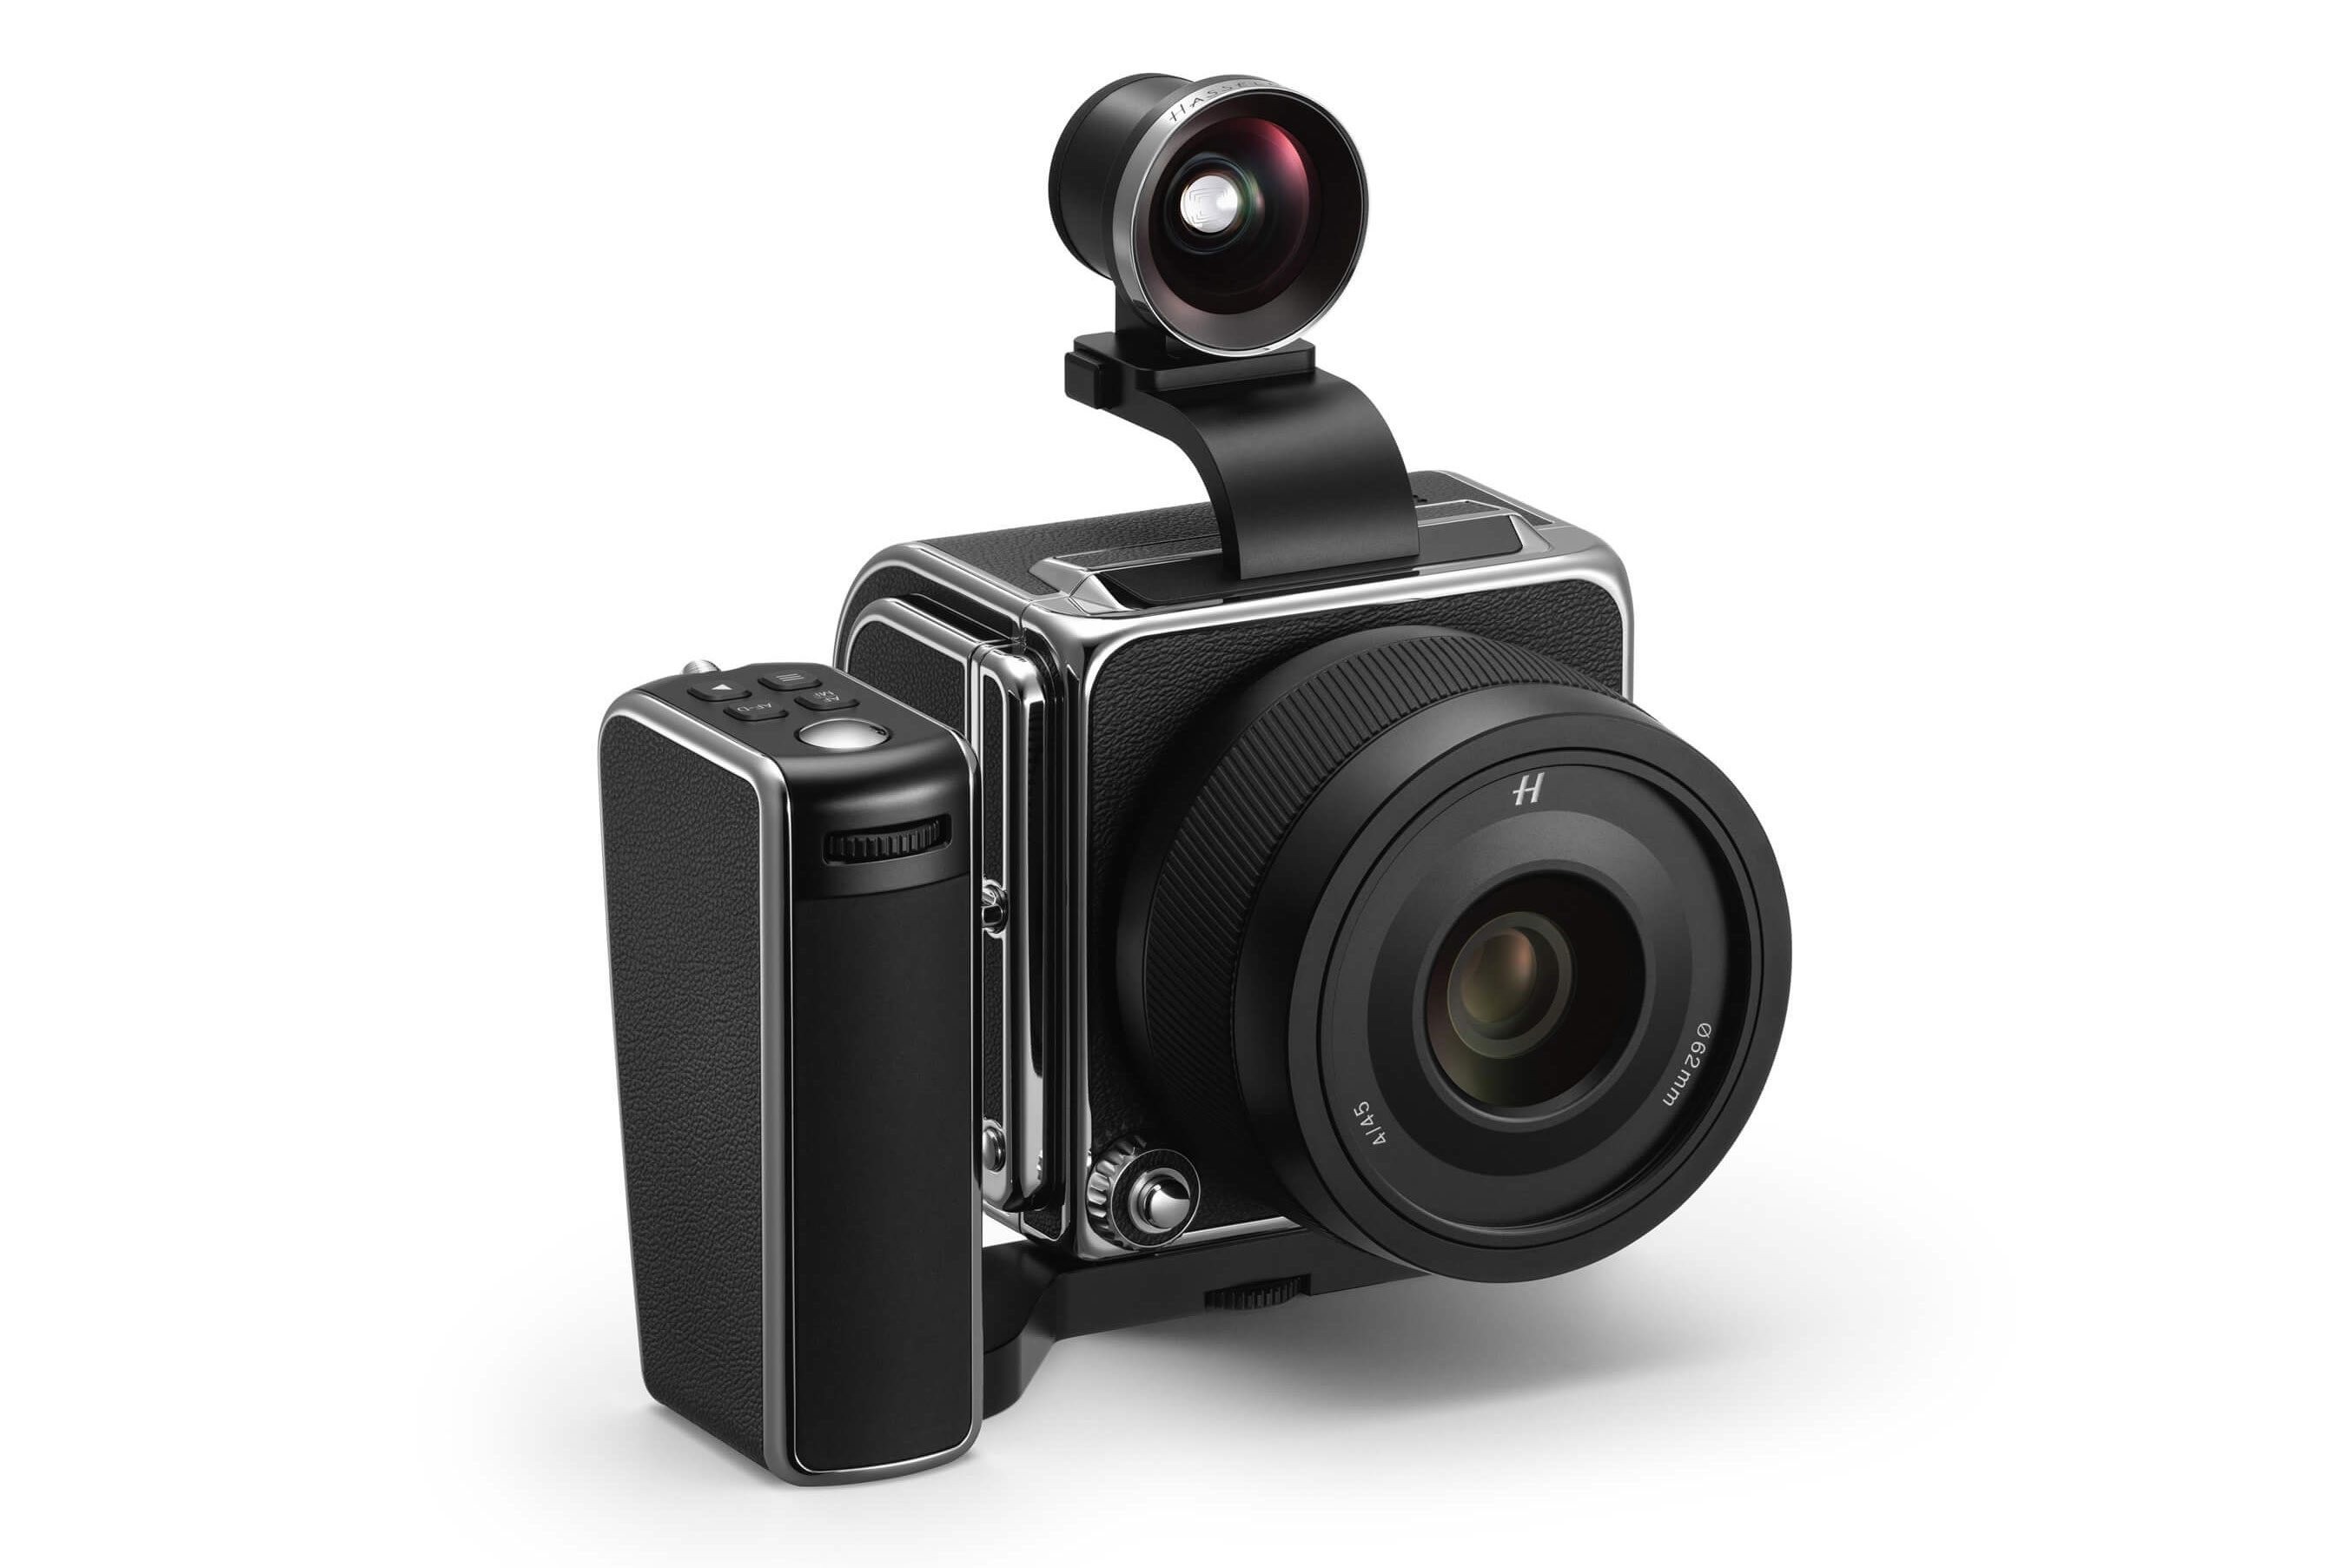 Hasselblad's 907X is a love letter to modular medium-format cameras